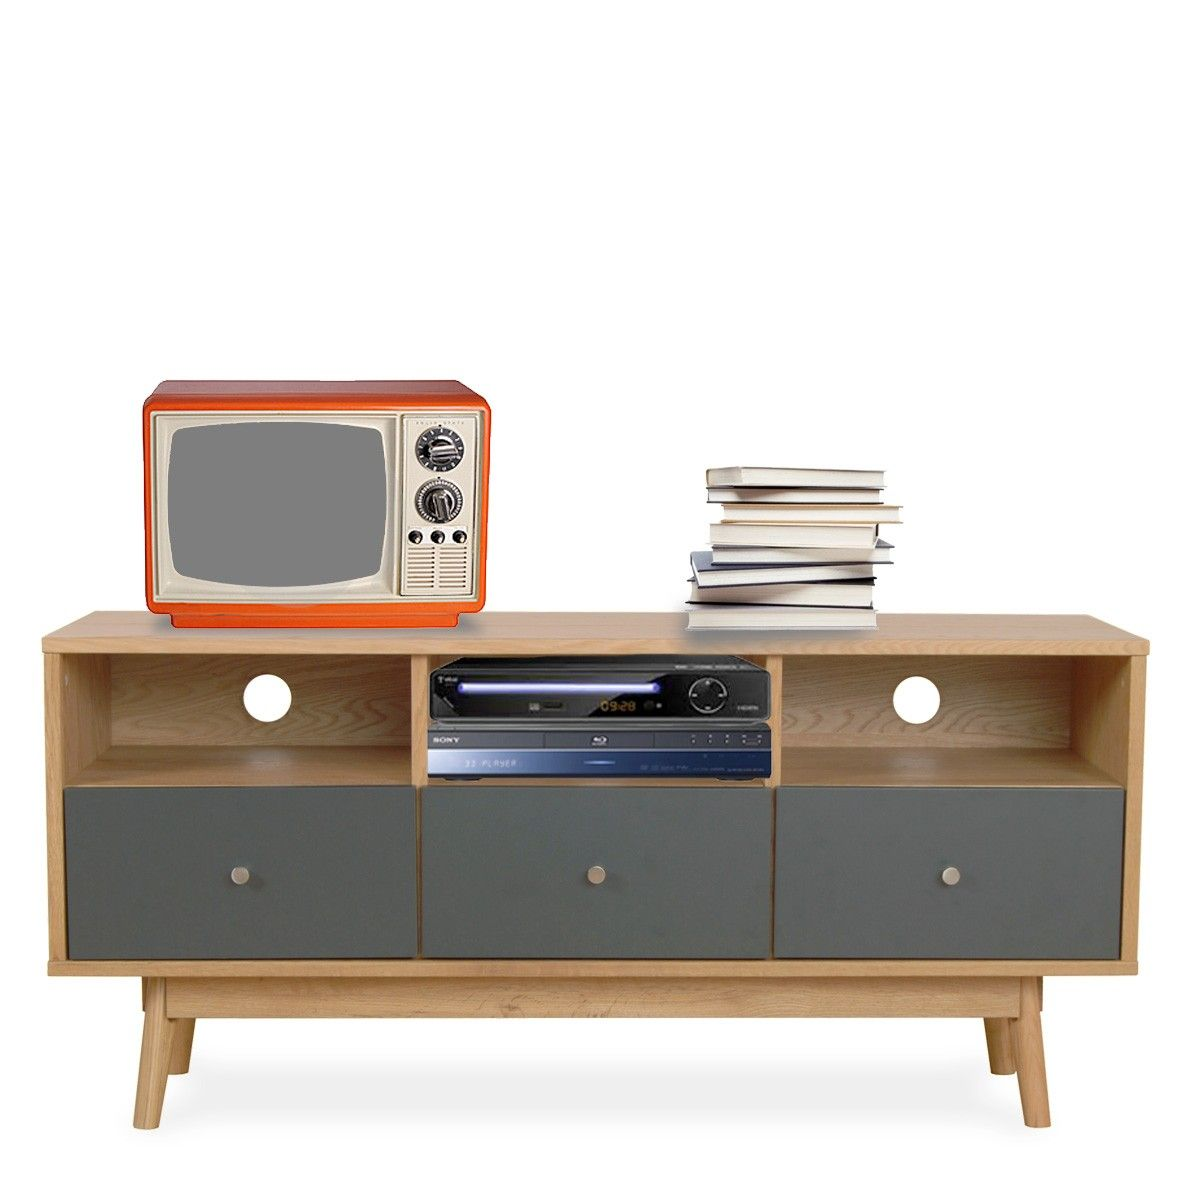 Meuble Tv Design Scandinave 3 Tiroirs Skoll D Coration  # Meuble Tv A La Mode